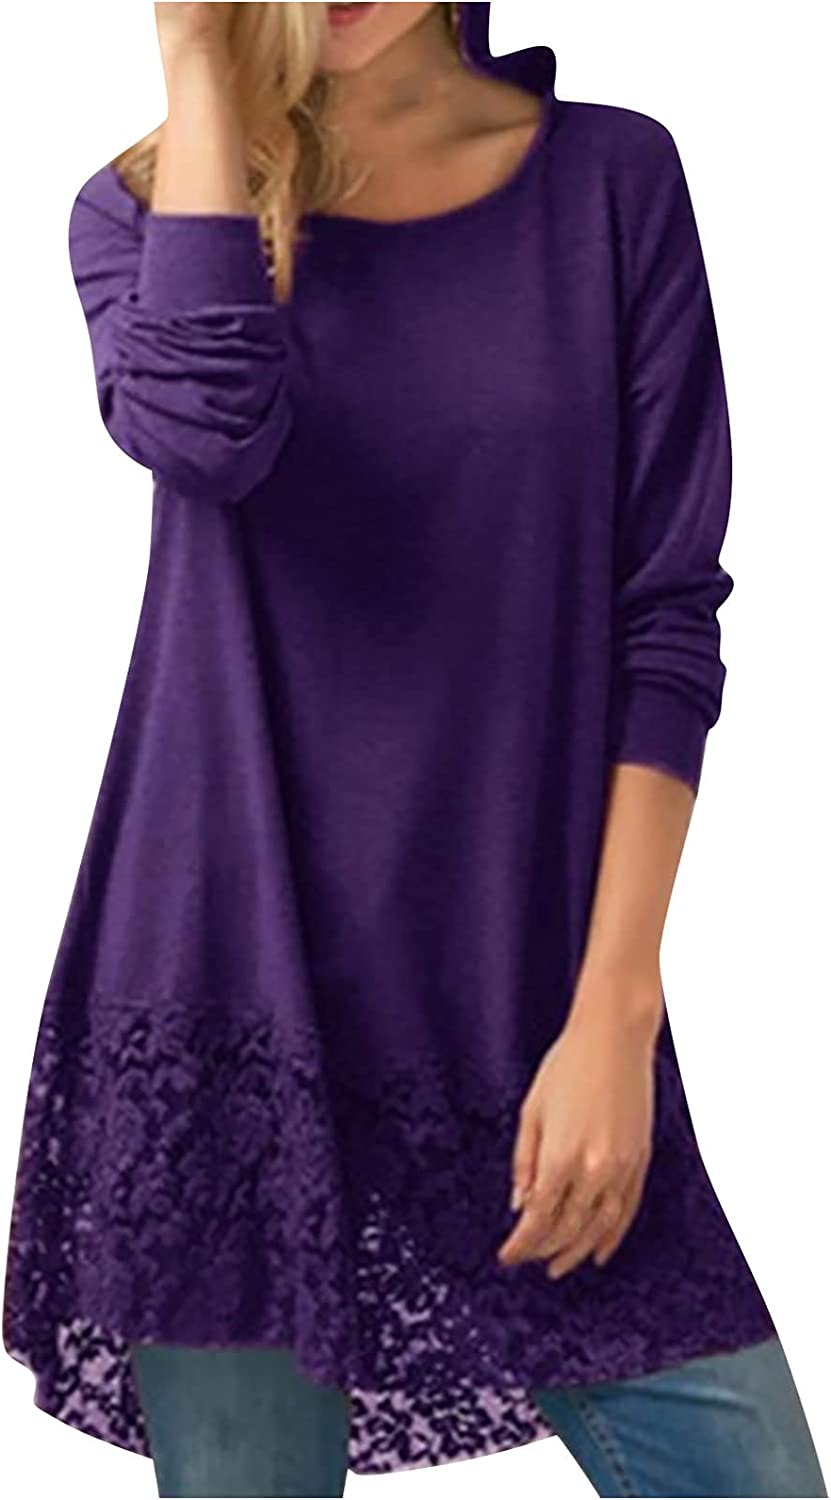 Womens Autumn Solid Color Lace Long Sleeve Shirt Pullover Stitching Round Neck Midi Tunic Tops Shirt Blouse